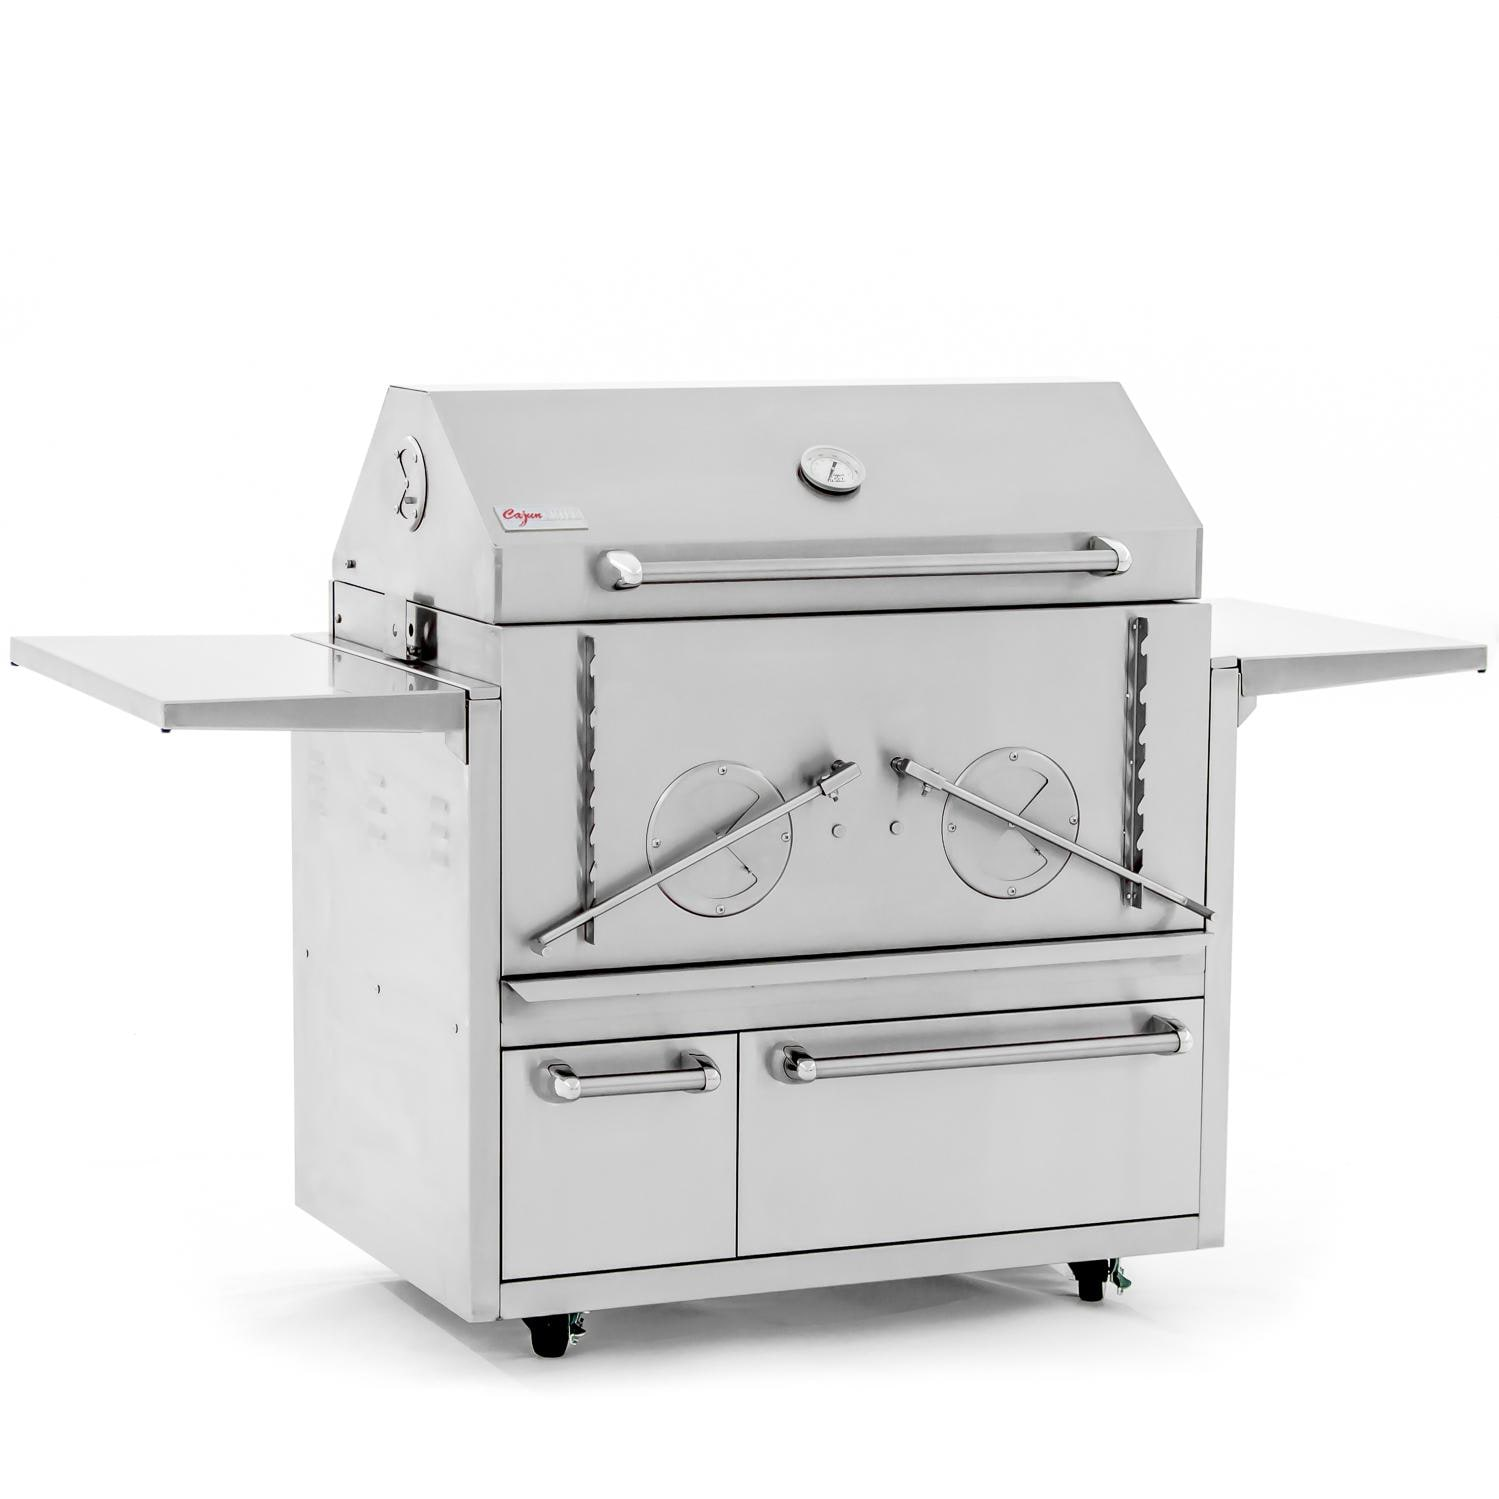 Cajun Grill  Preaux 36 inch Stainless Steel Charcoal Grill - PGI-900 + 900CART